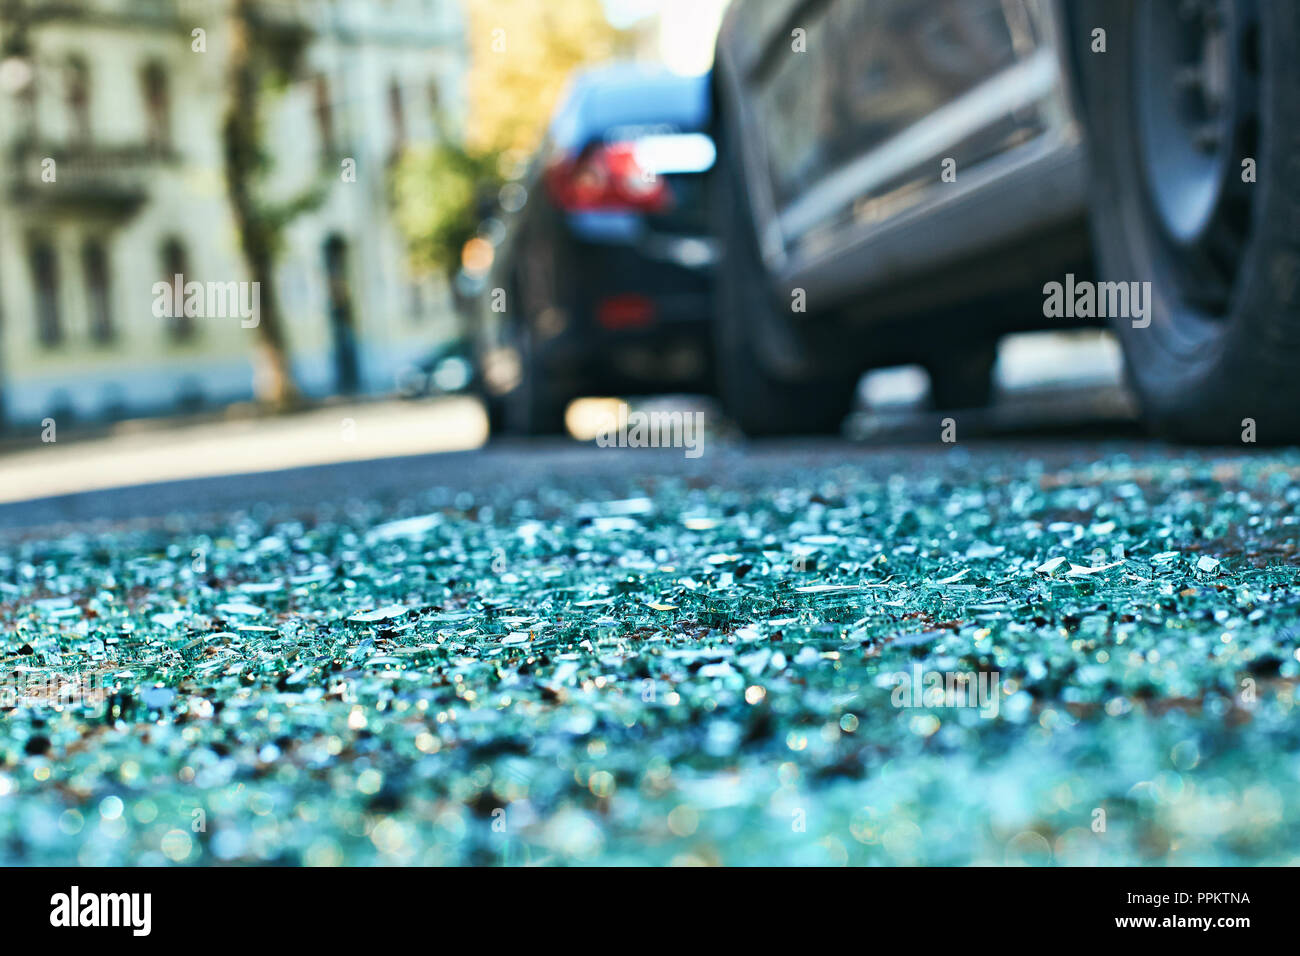 Shards of car glass on the street - Stock Image